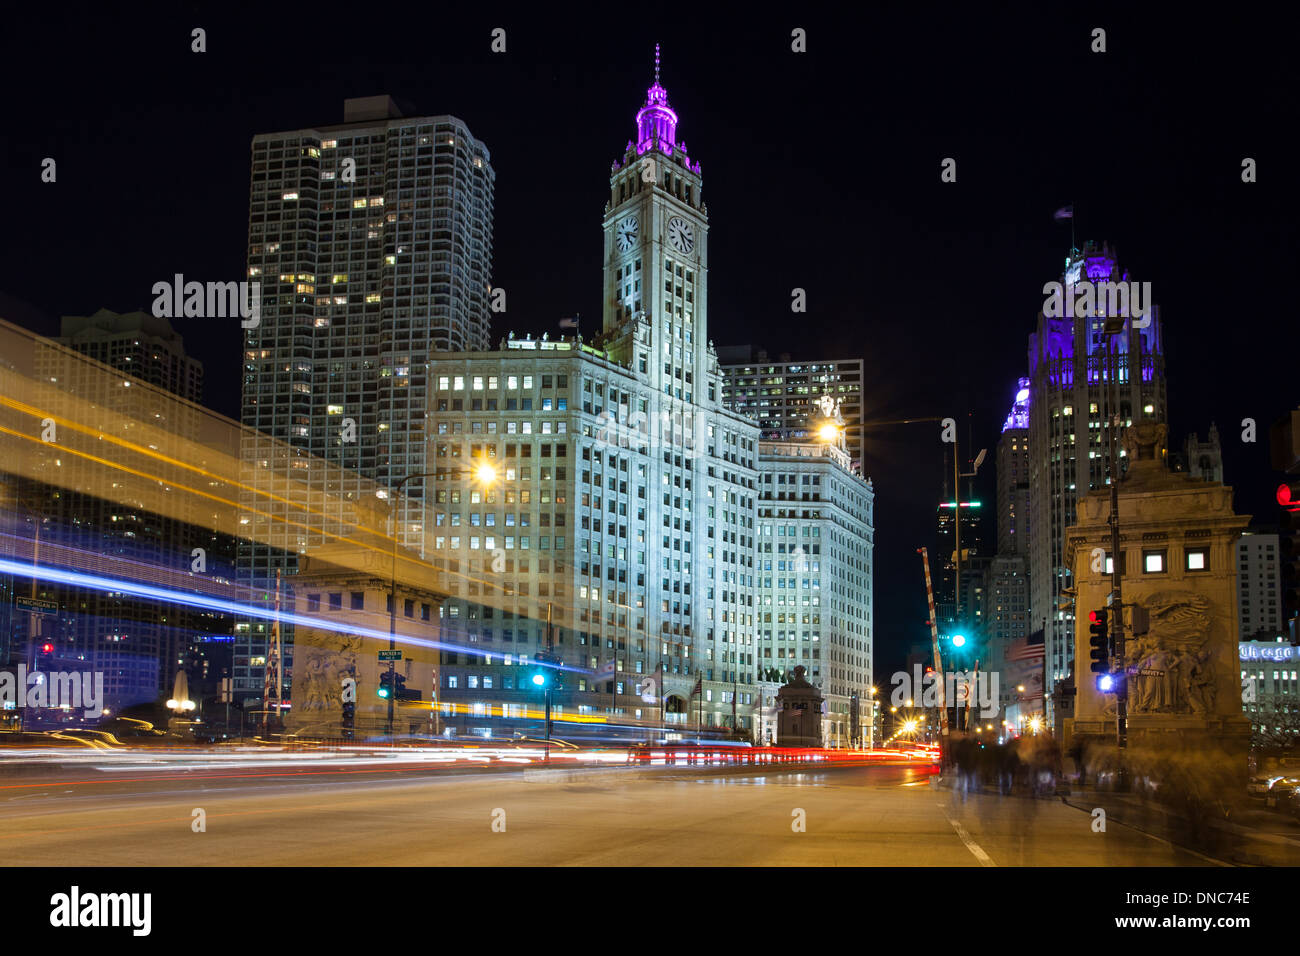 Chicago rush hour traffic from Lower Wacker Drive towards the Wrigley Building on Michigan Avenue in Illinois, USA - Stock Image